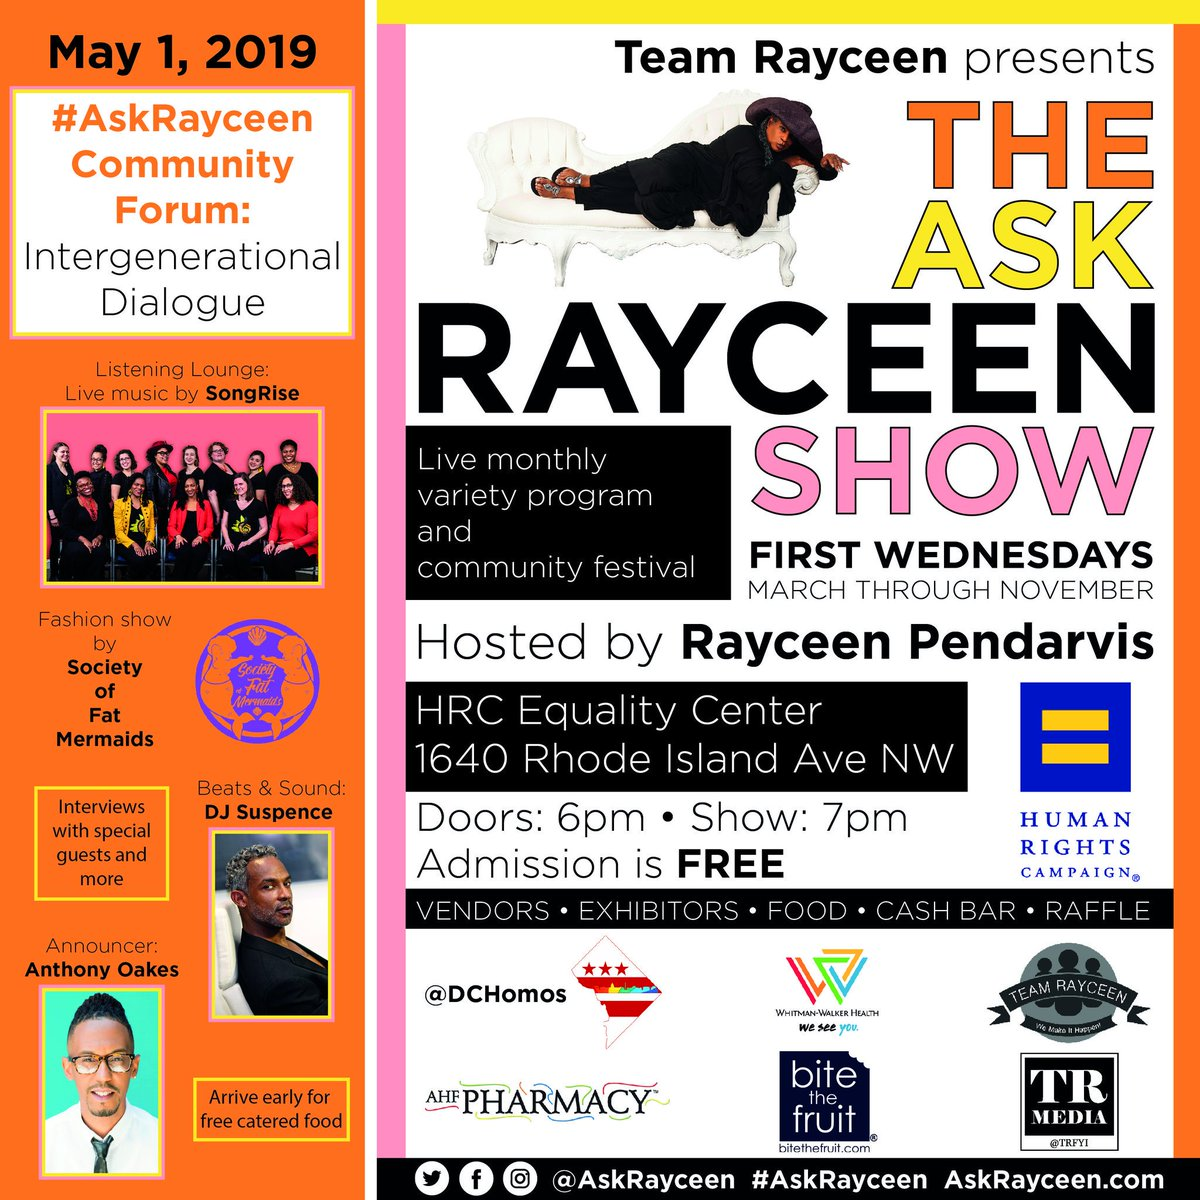 f7f36d00bc316 ... @TRSpencerMD ○Vendors, giveaways, and much more Venue: HRC in DC Doors:  6pm Show: 7pm Admission: FREE http://AskRayceen.com  pic.twitter.com/Bhb1Wdrqdo